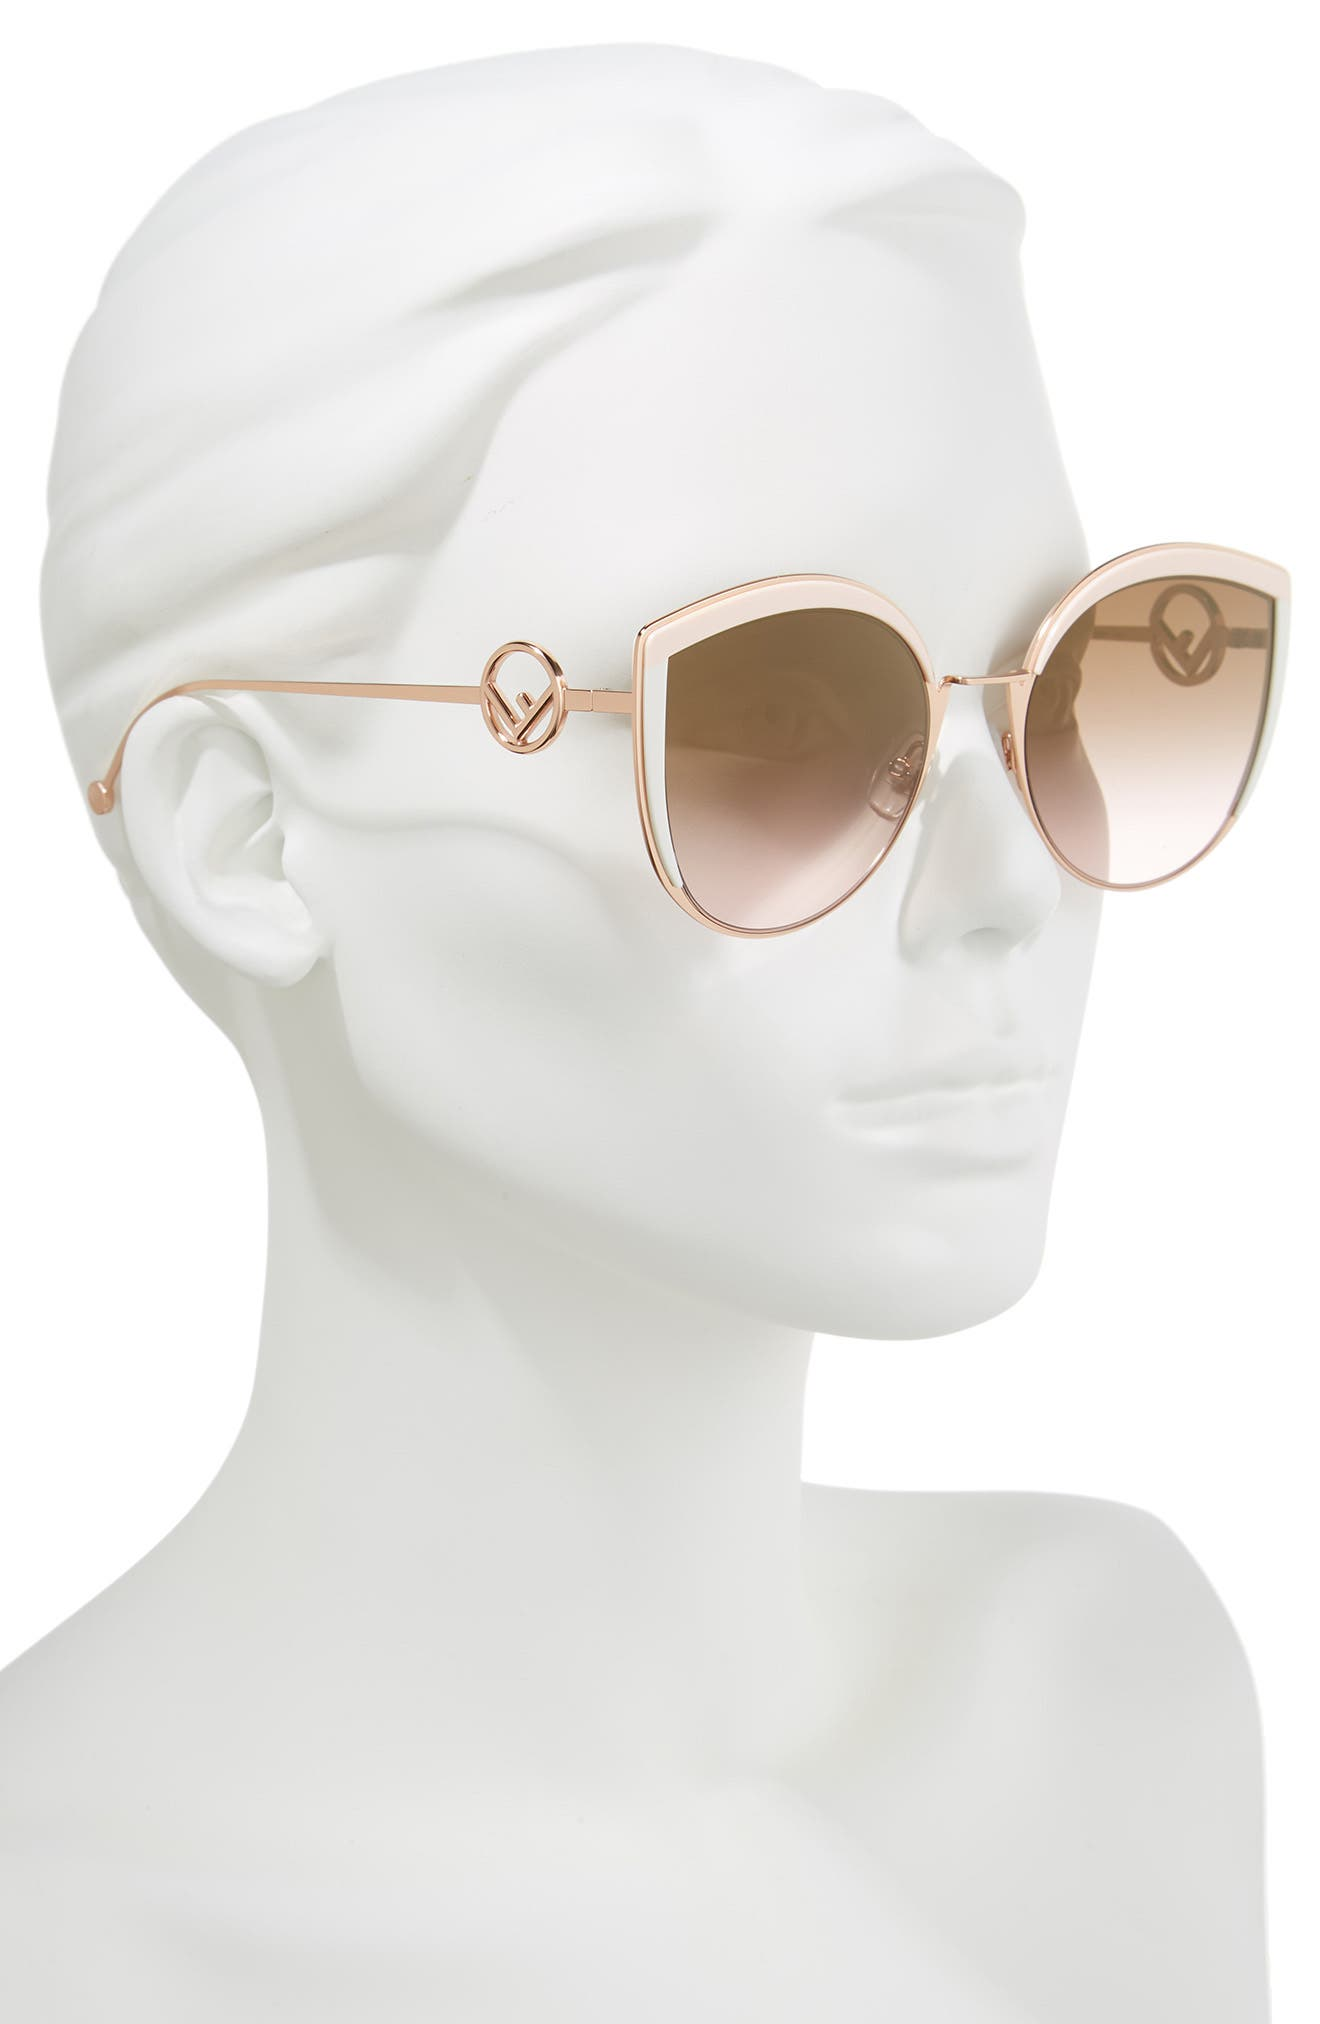 58mm Metal Butterfly Sunglasses,                             Alternate thumbnail 2, color,                             Pink